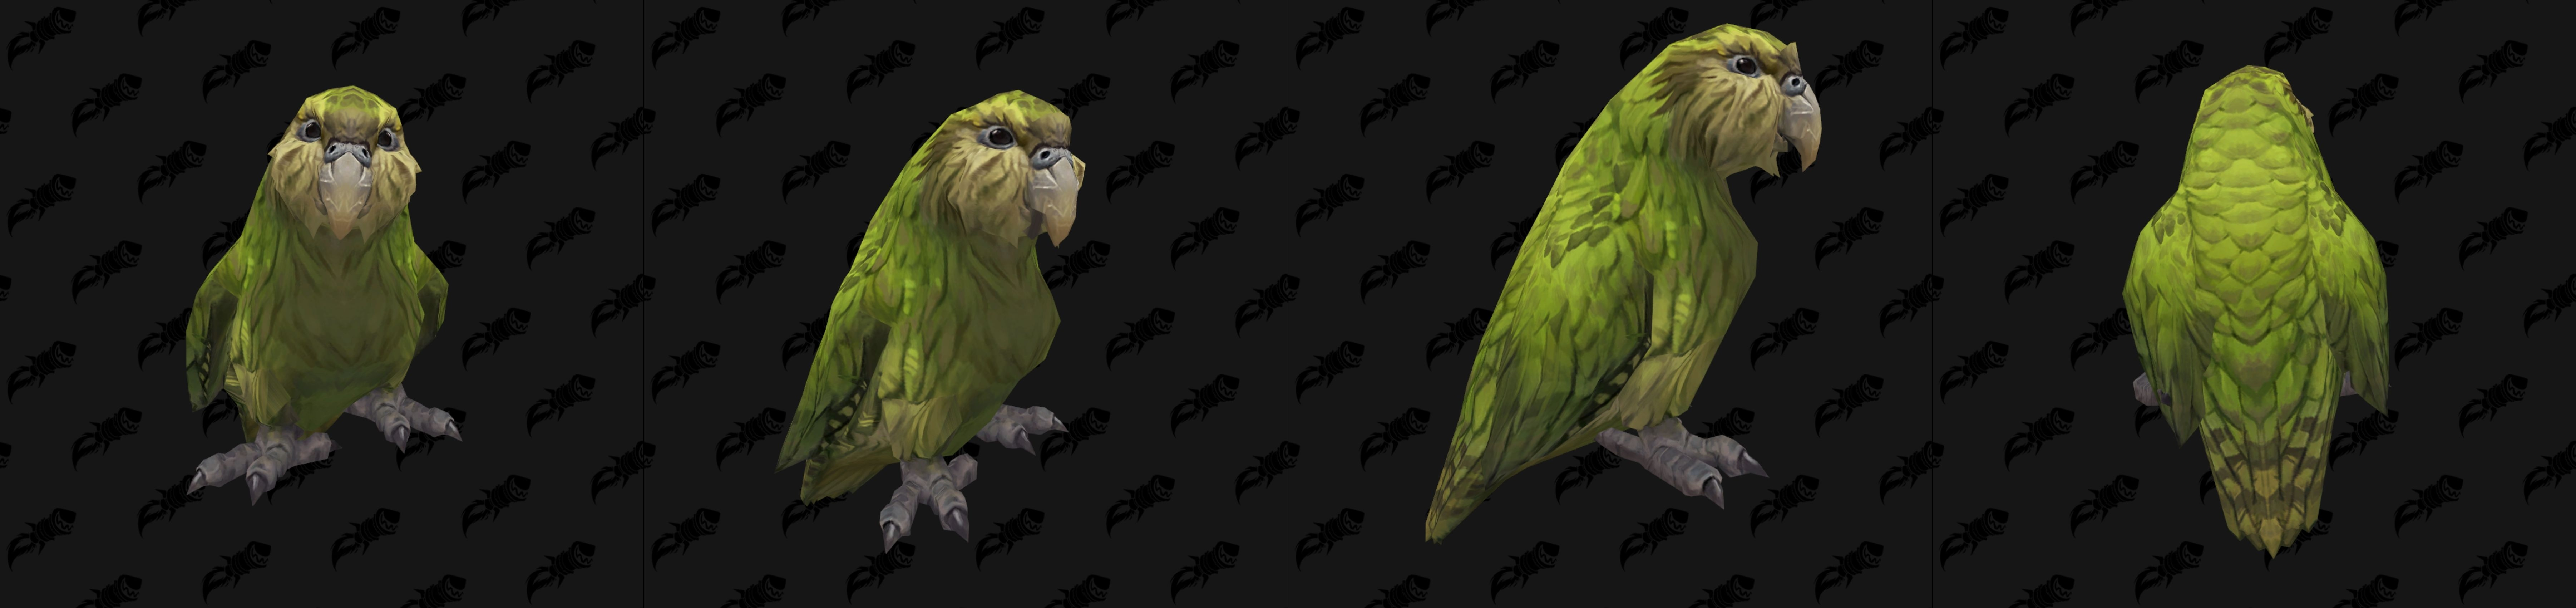 Pet Battles in Battle For Azeroth - Guides - Wowhead